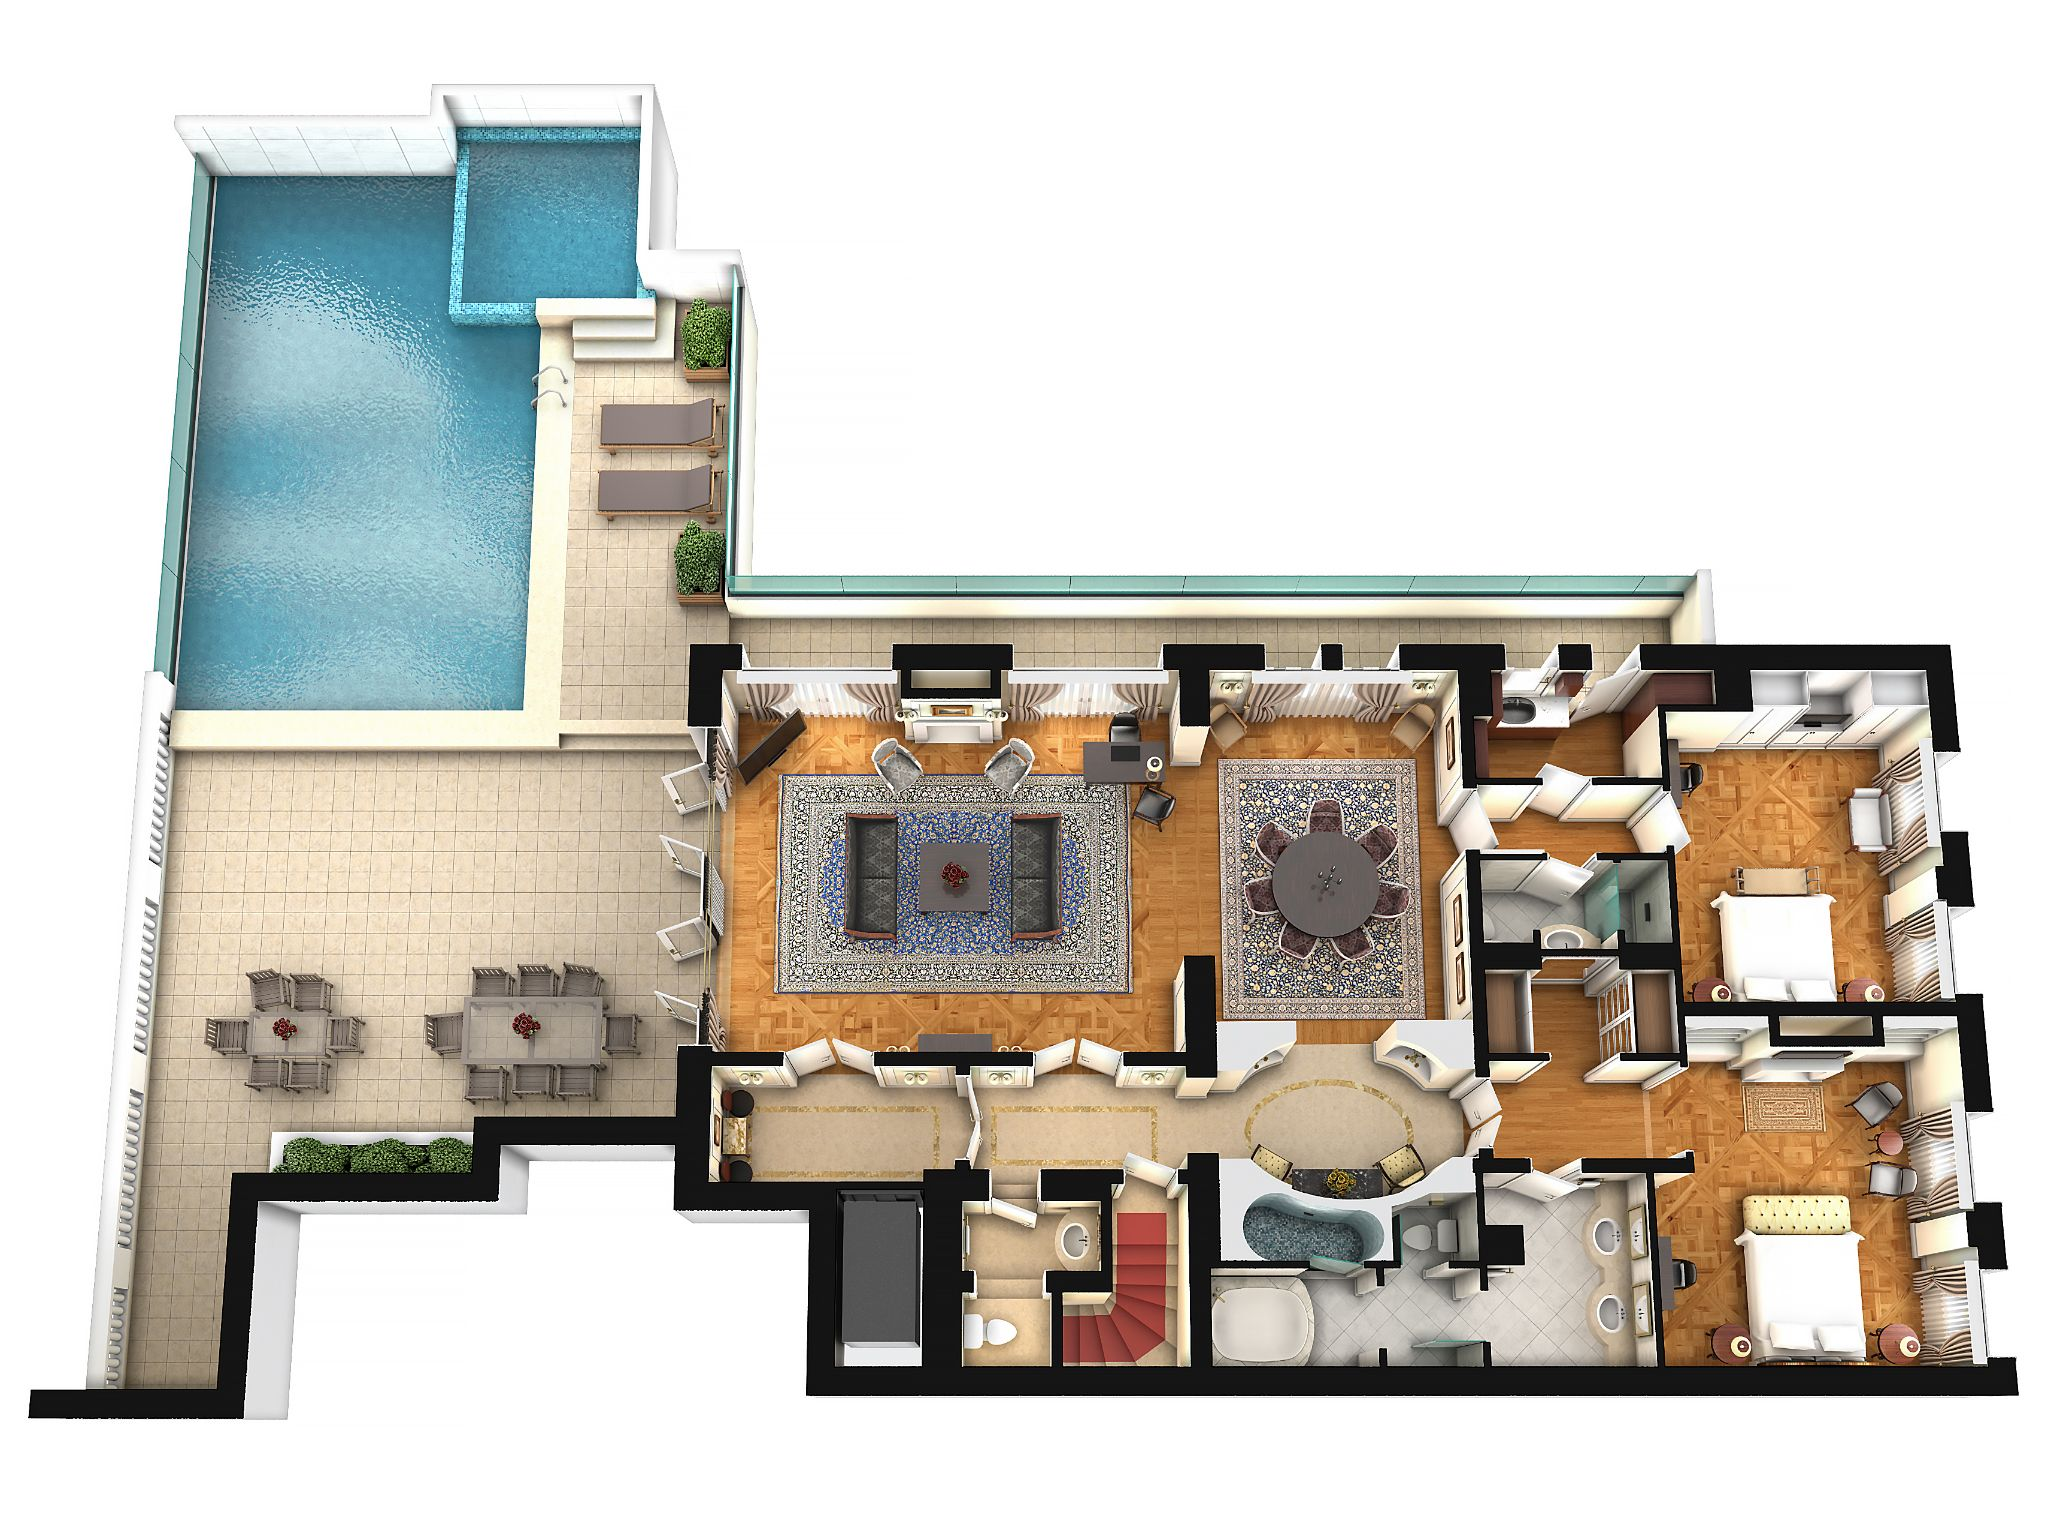 Penthouse Suite on safe house floor plans